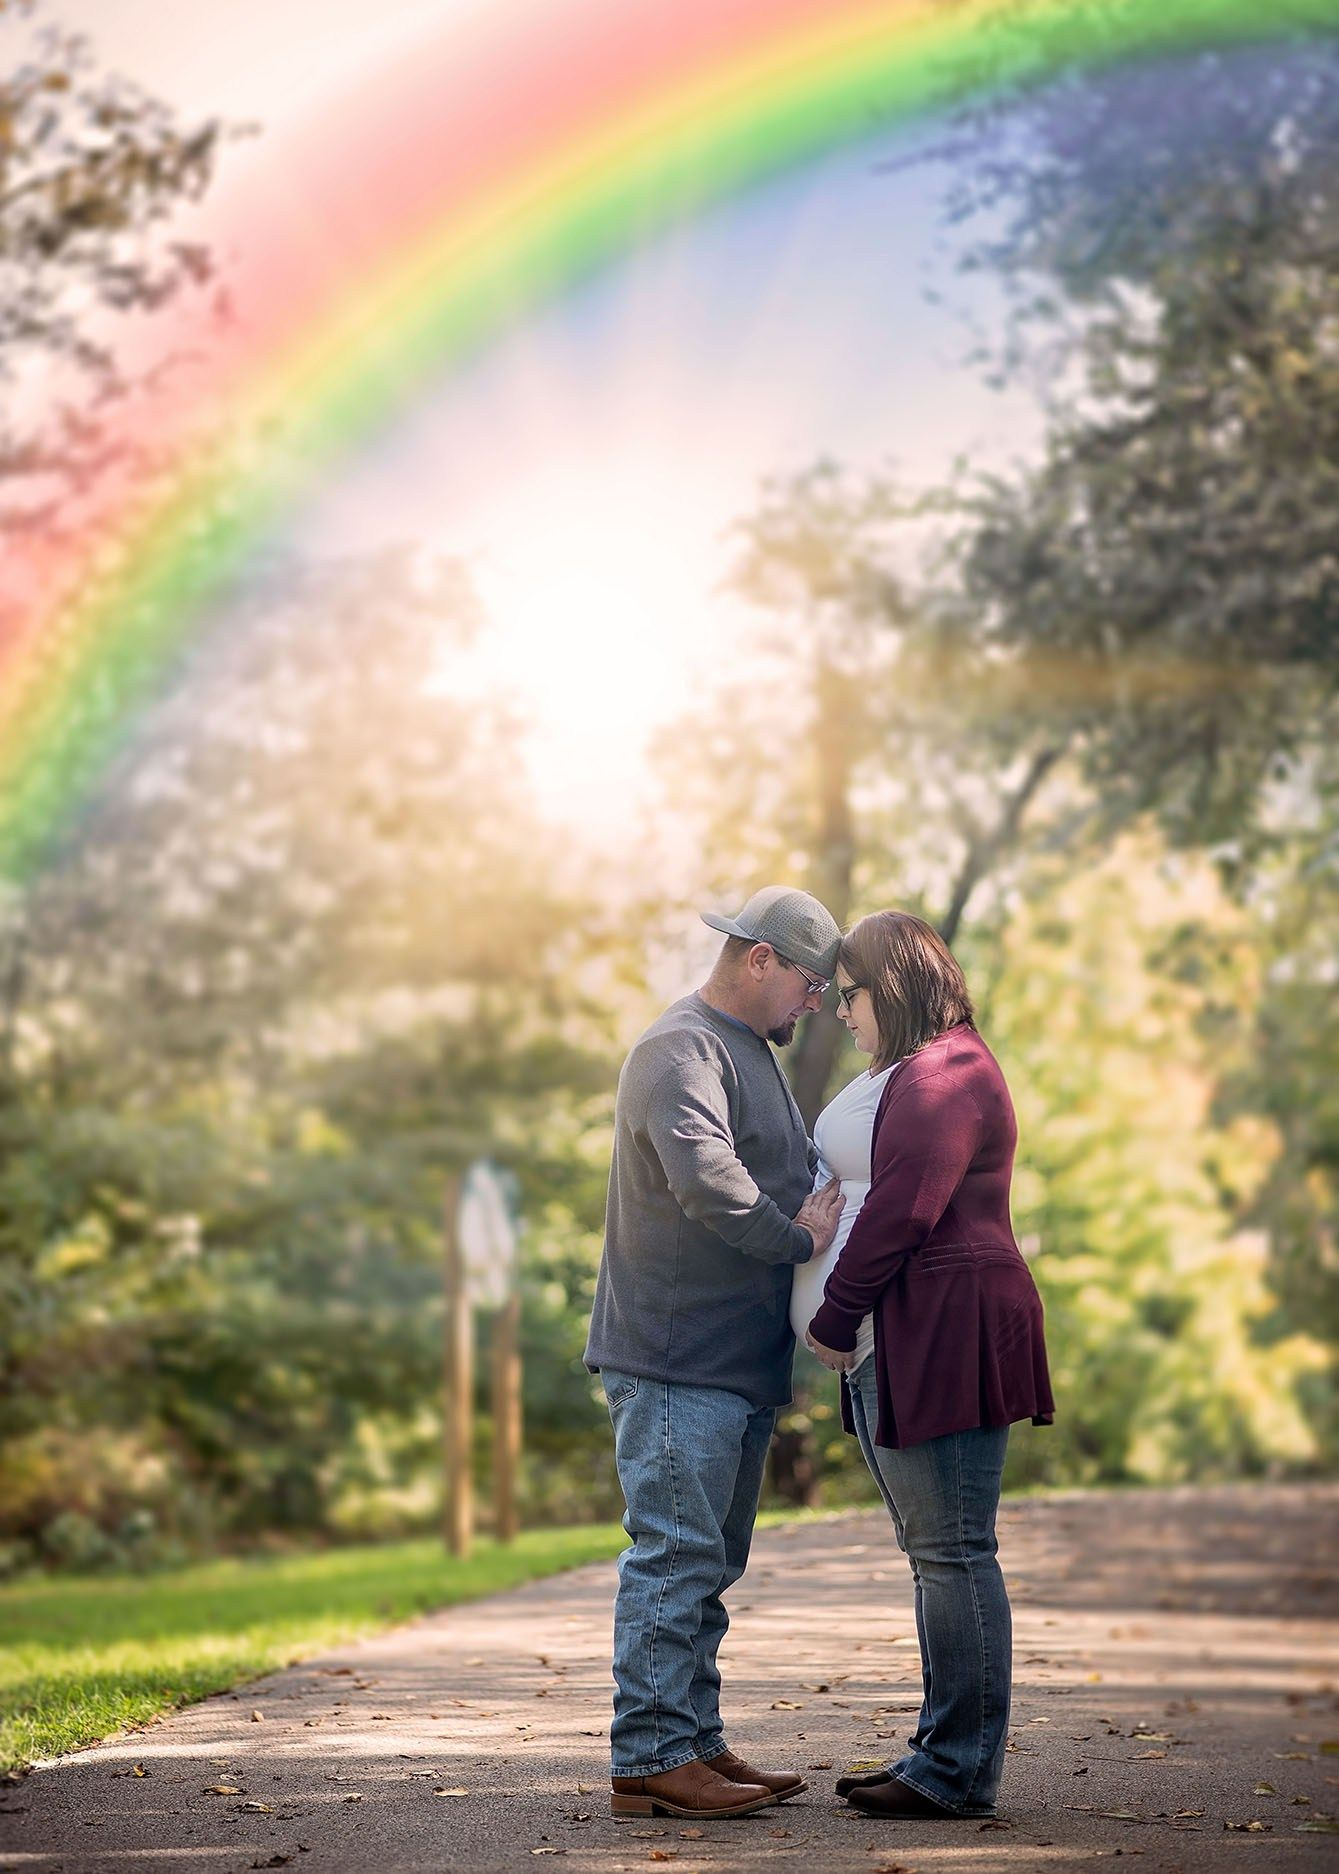 Maternity With Images Rainbow Baby Photography Rainbow Baby